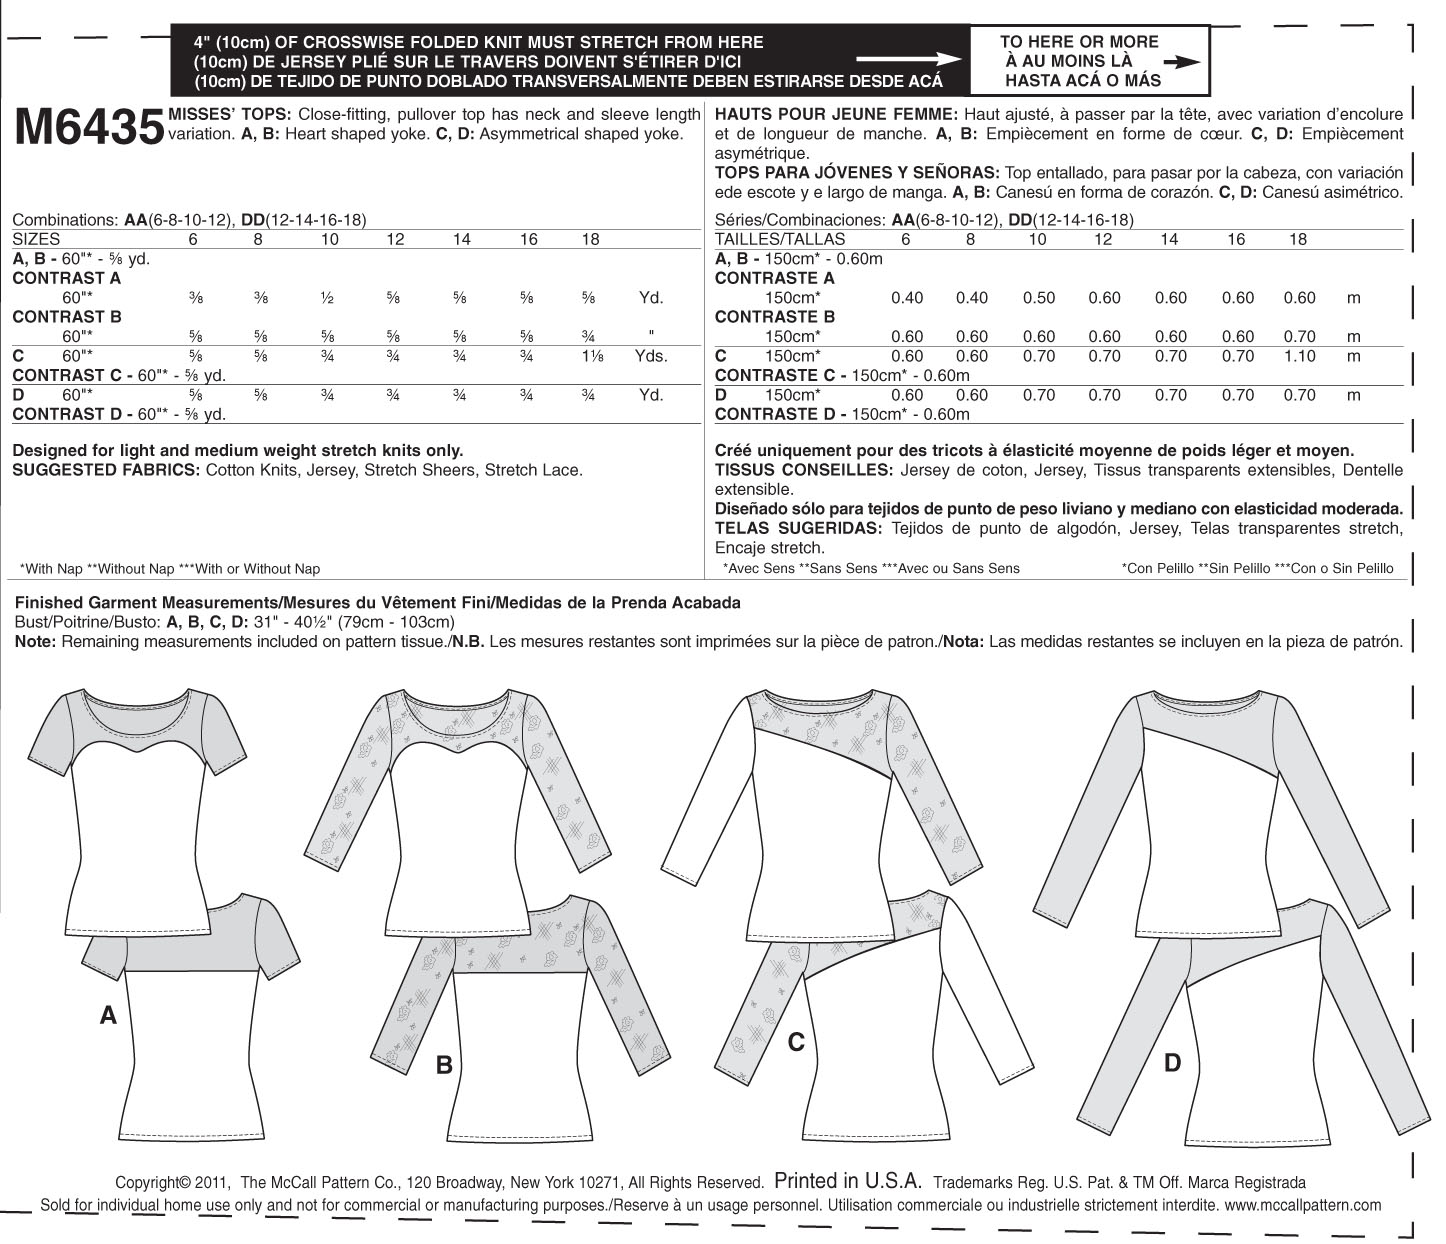 Misses\' Tops-AA (6-8-10-12) -*SEWING PATTERN*